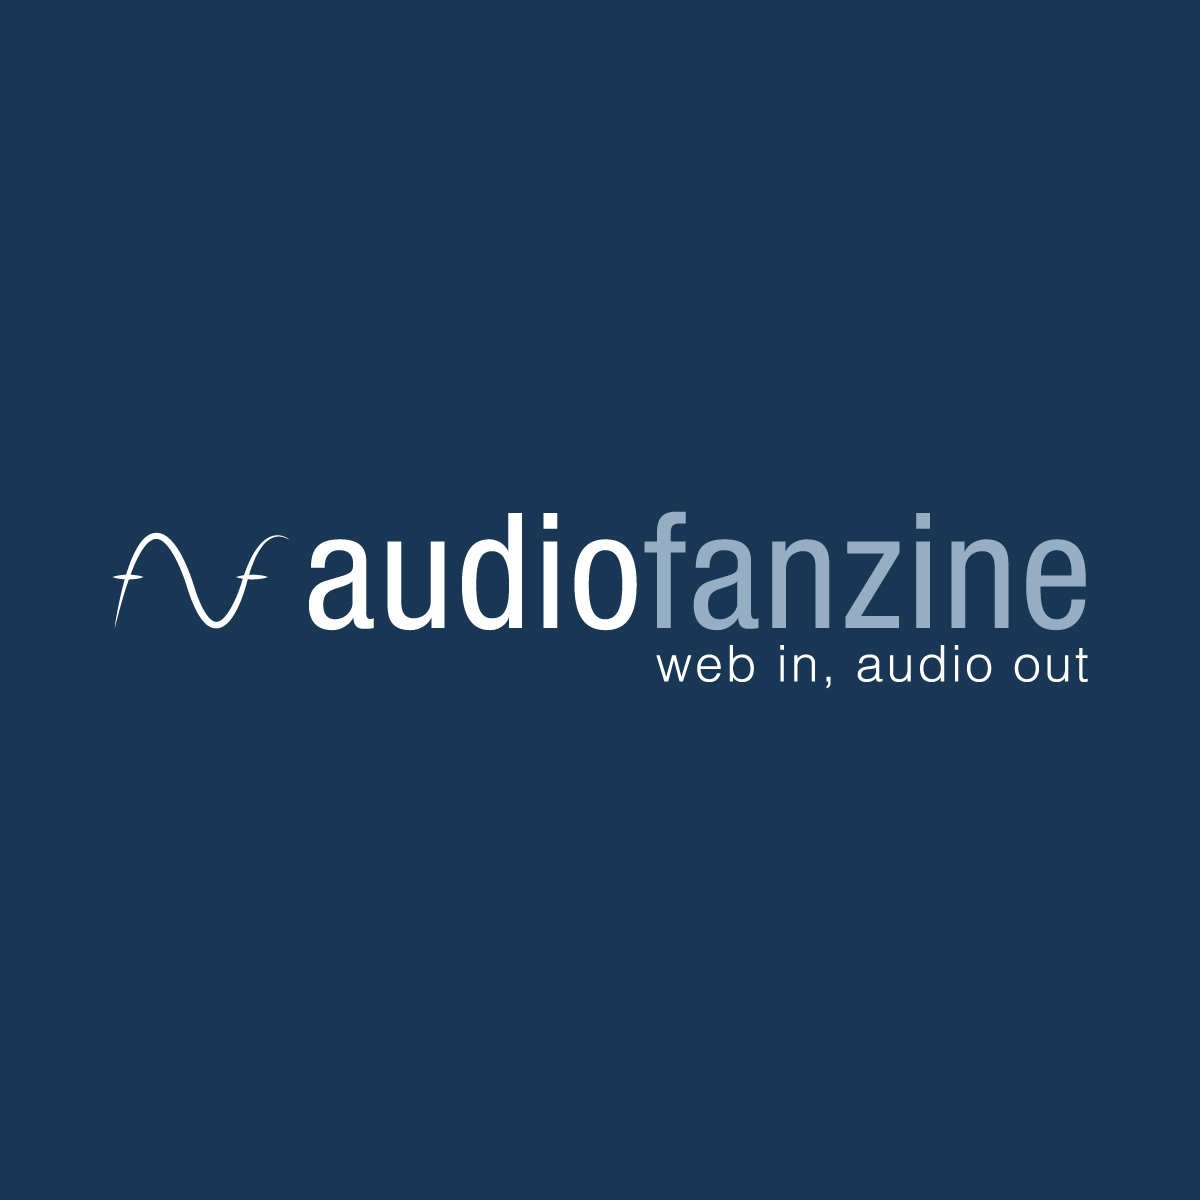 Audiofanzine Home Studio Mao Guitares Basses Sono Et Dj